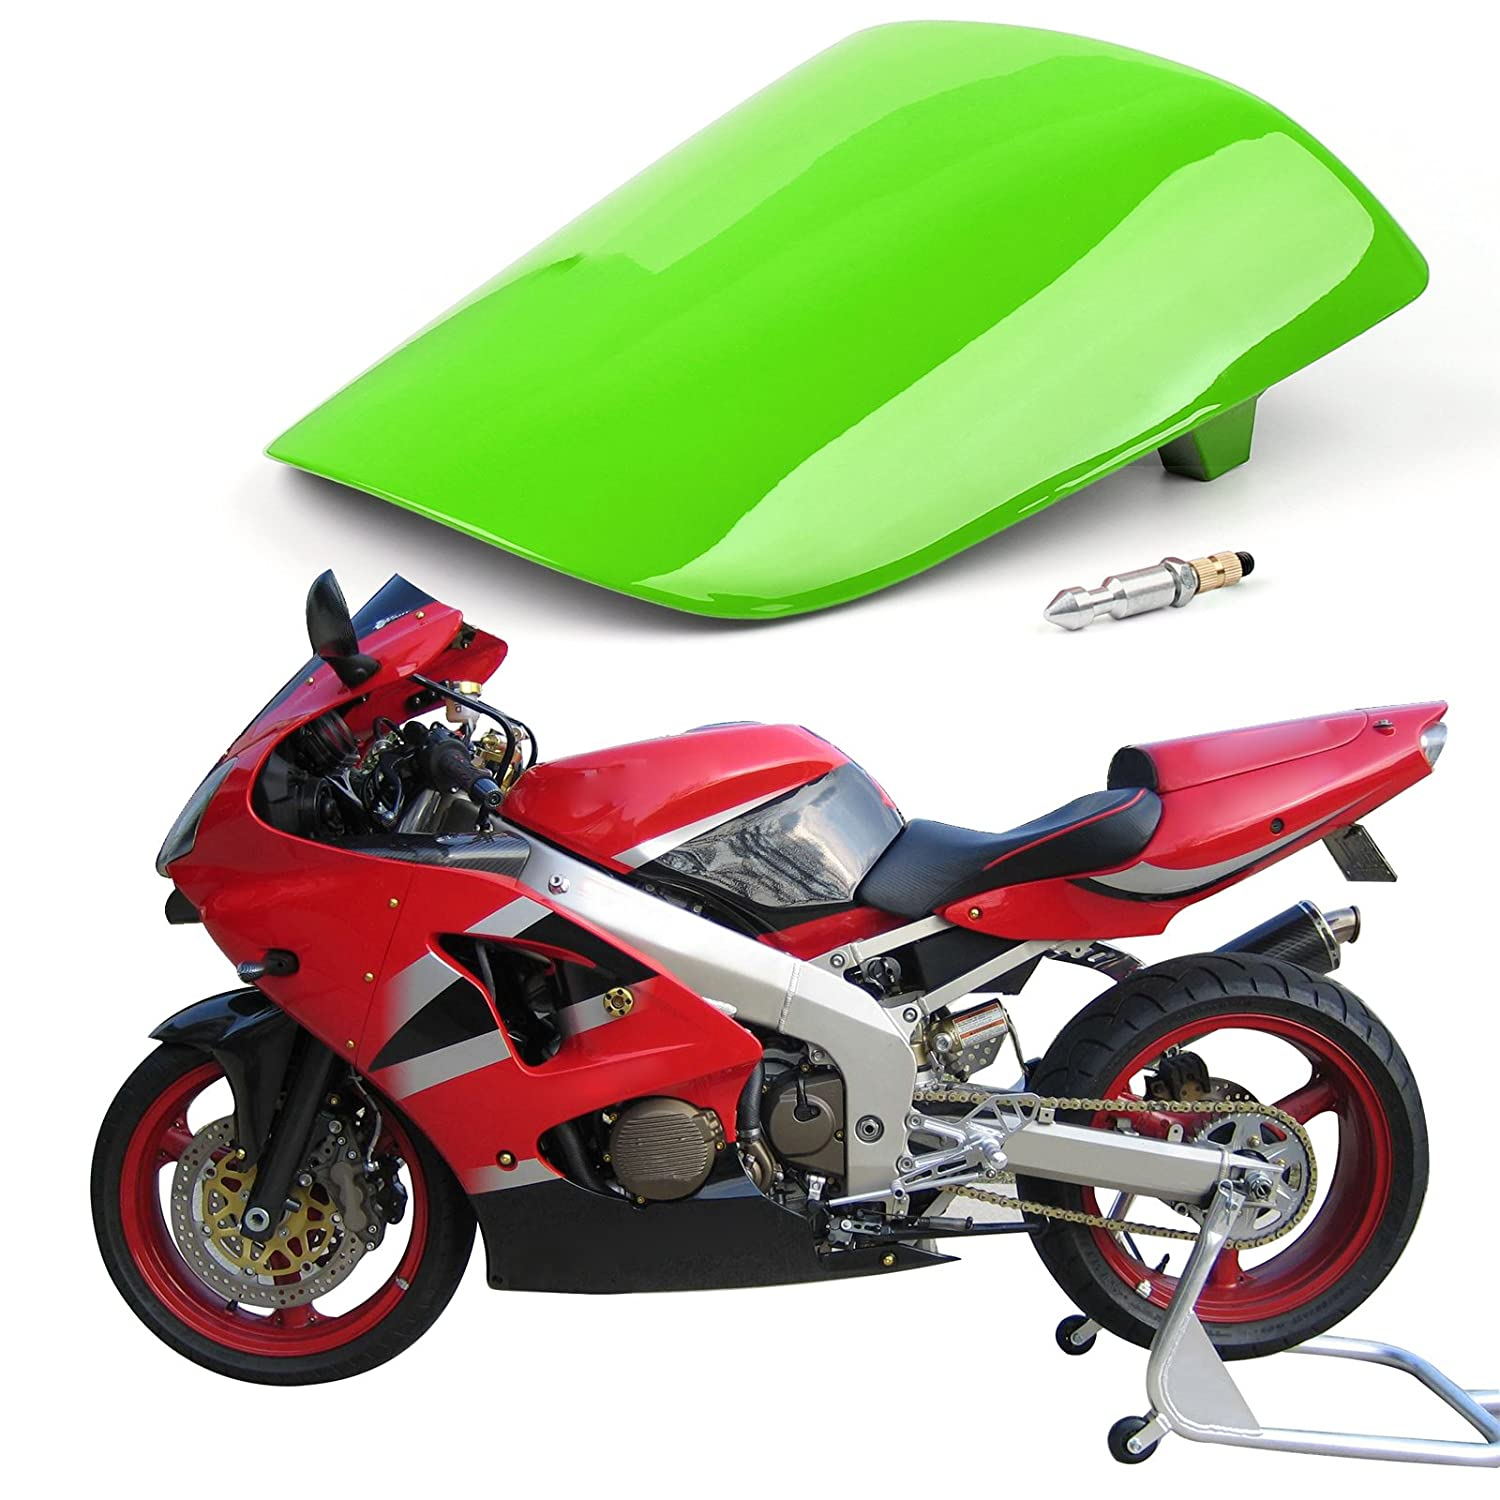 Areyourshop Rear Seat Fairing Cover Cowl for ZX6R ZX 6R 2000-2002 2001